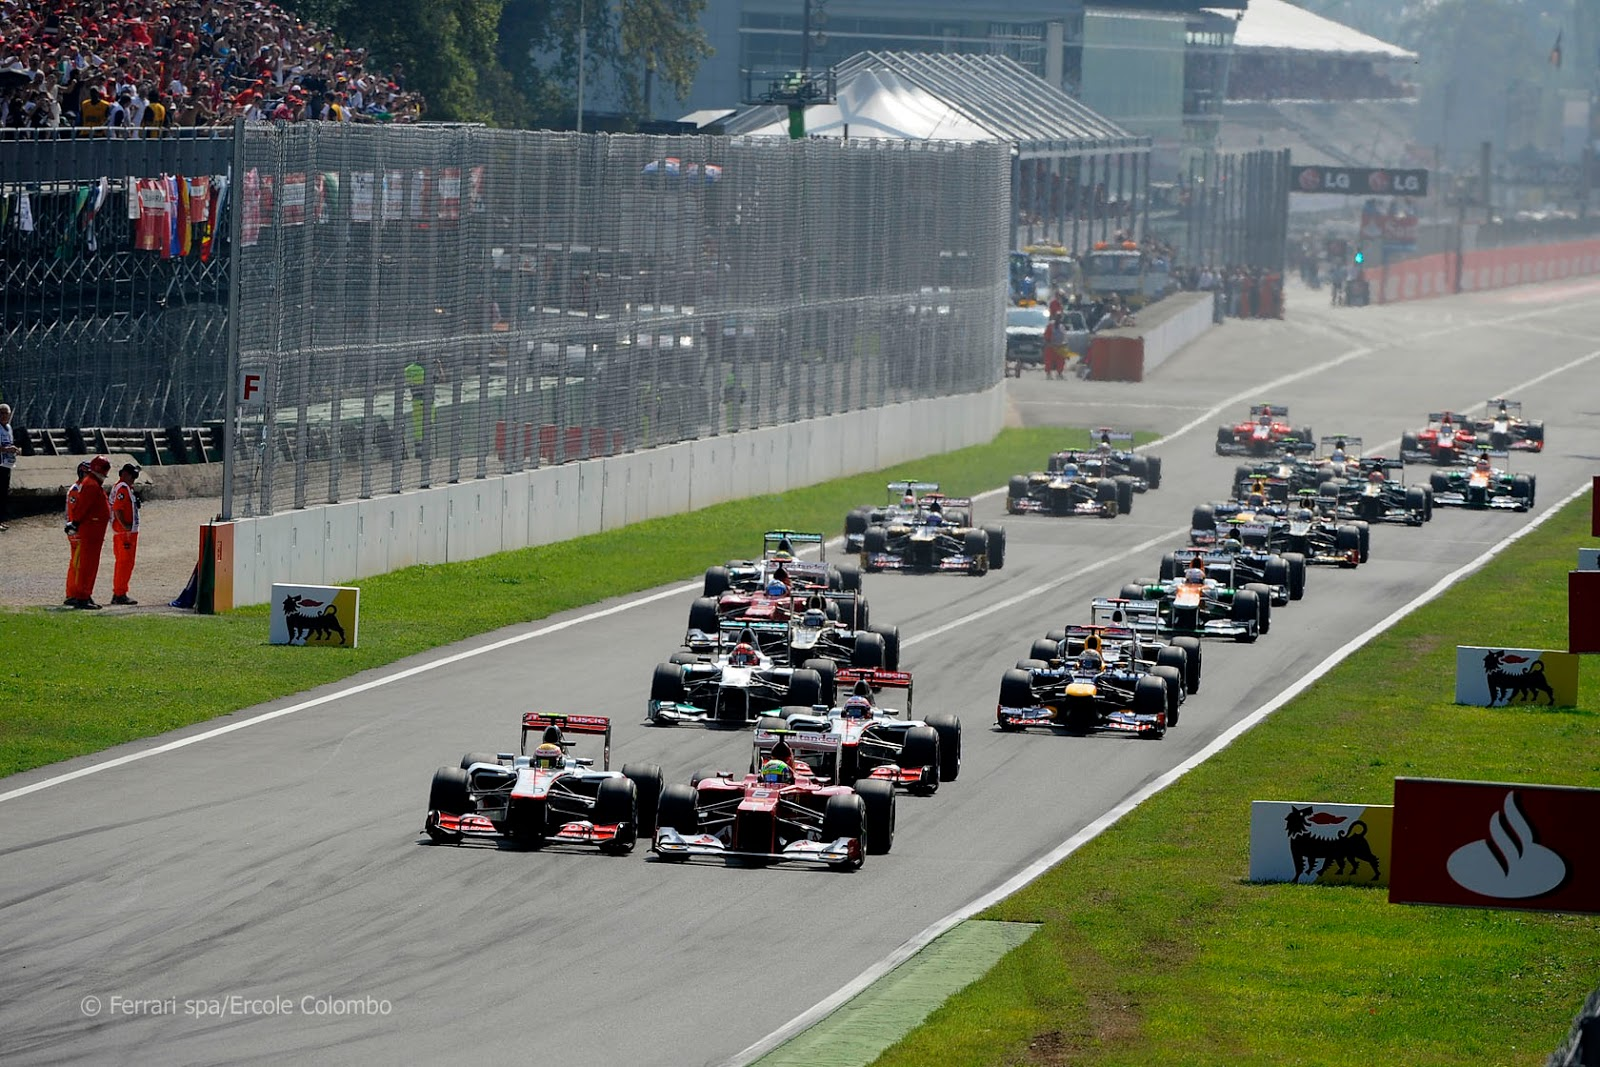 k 1 world gp 1999 monza - photo#17